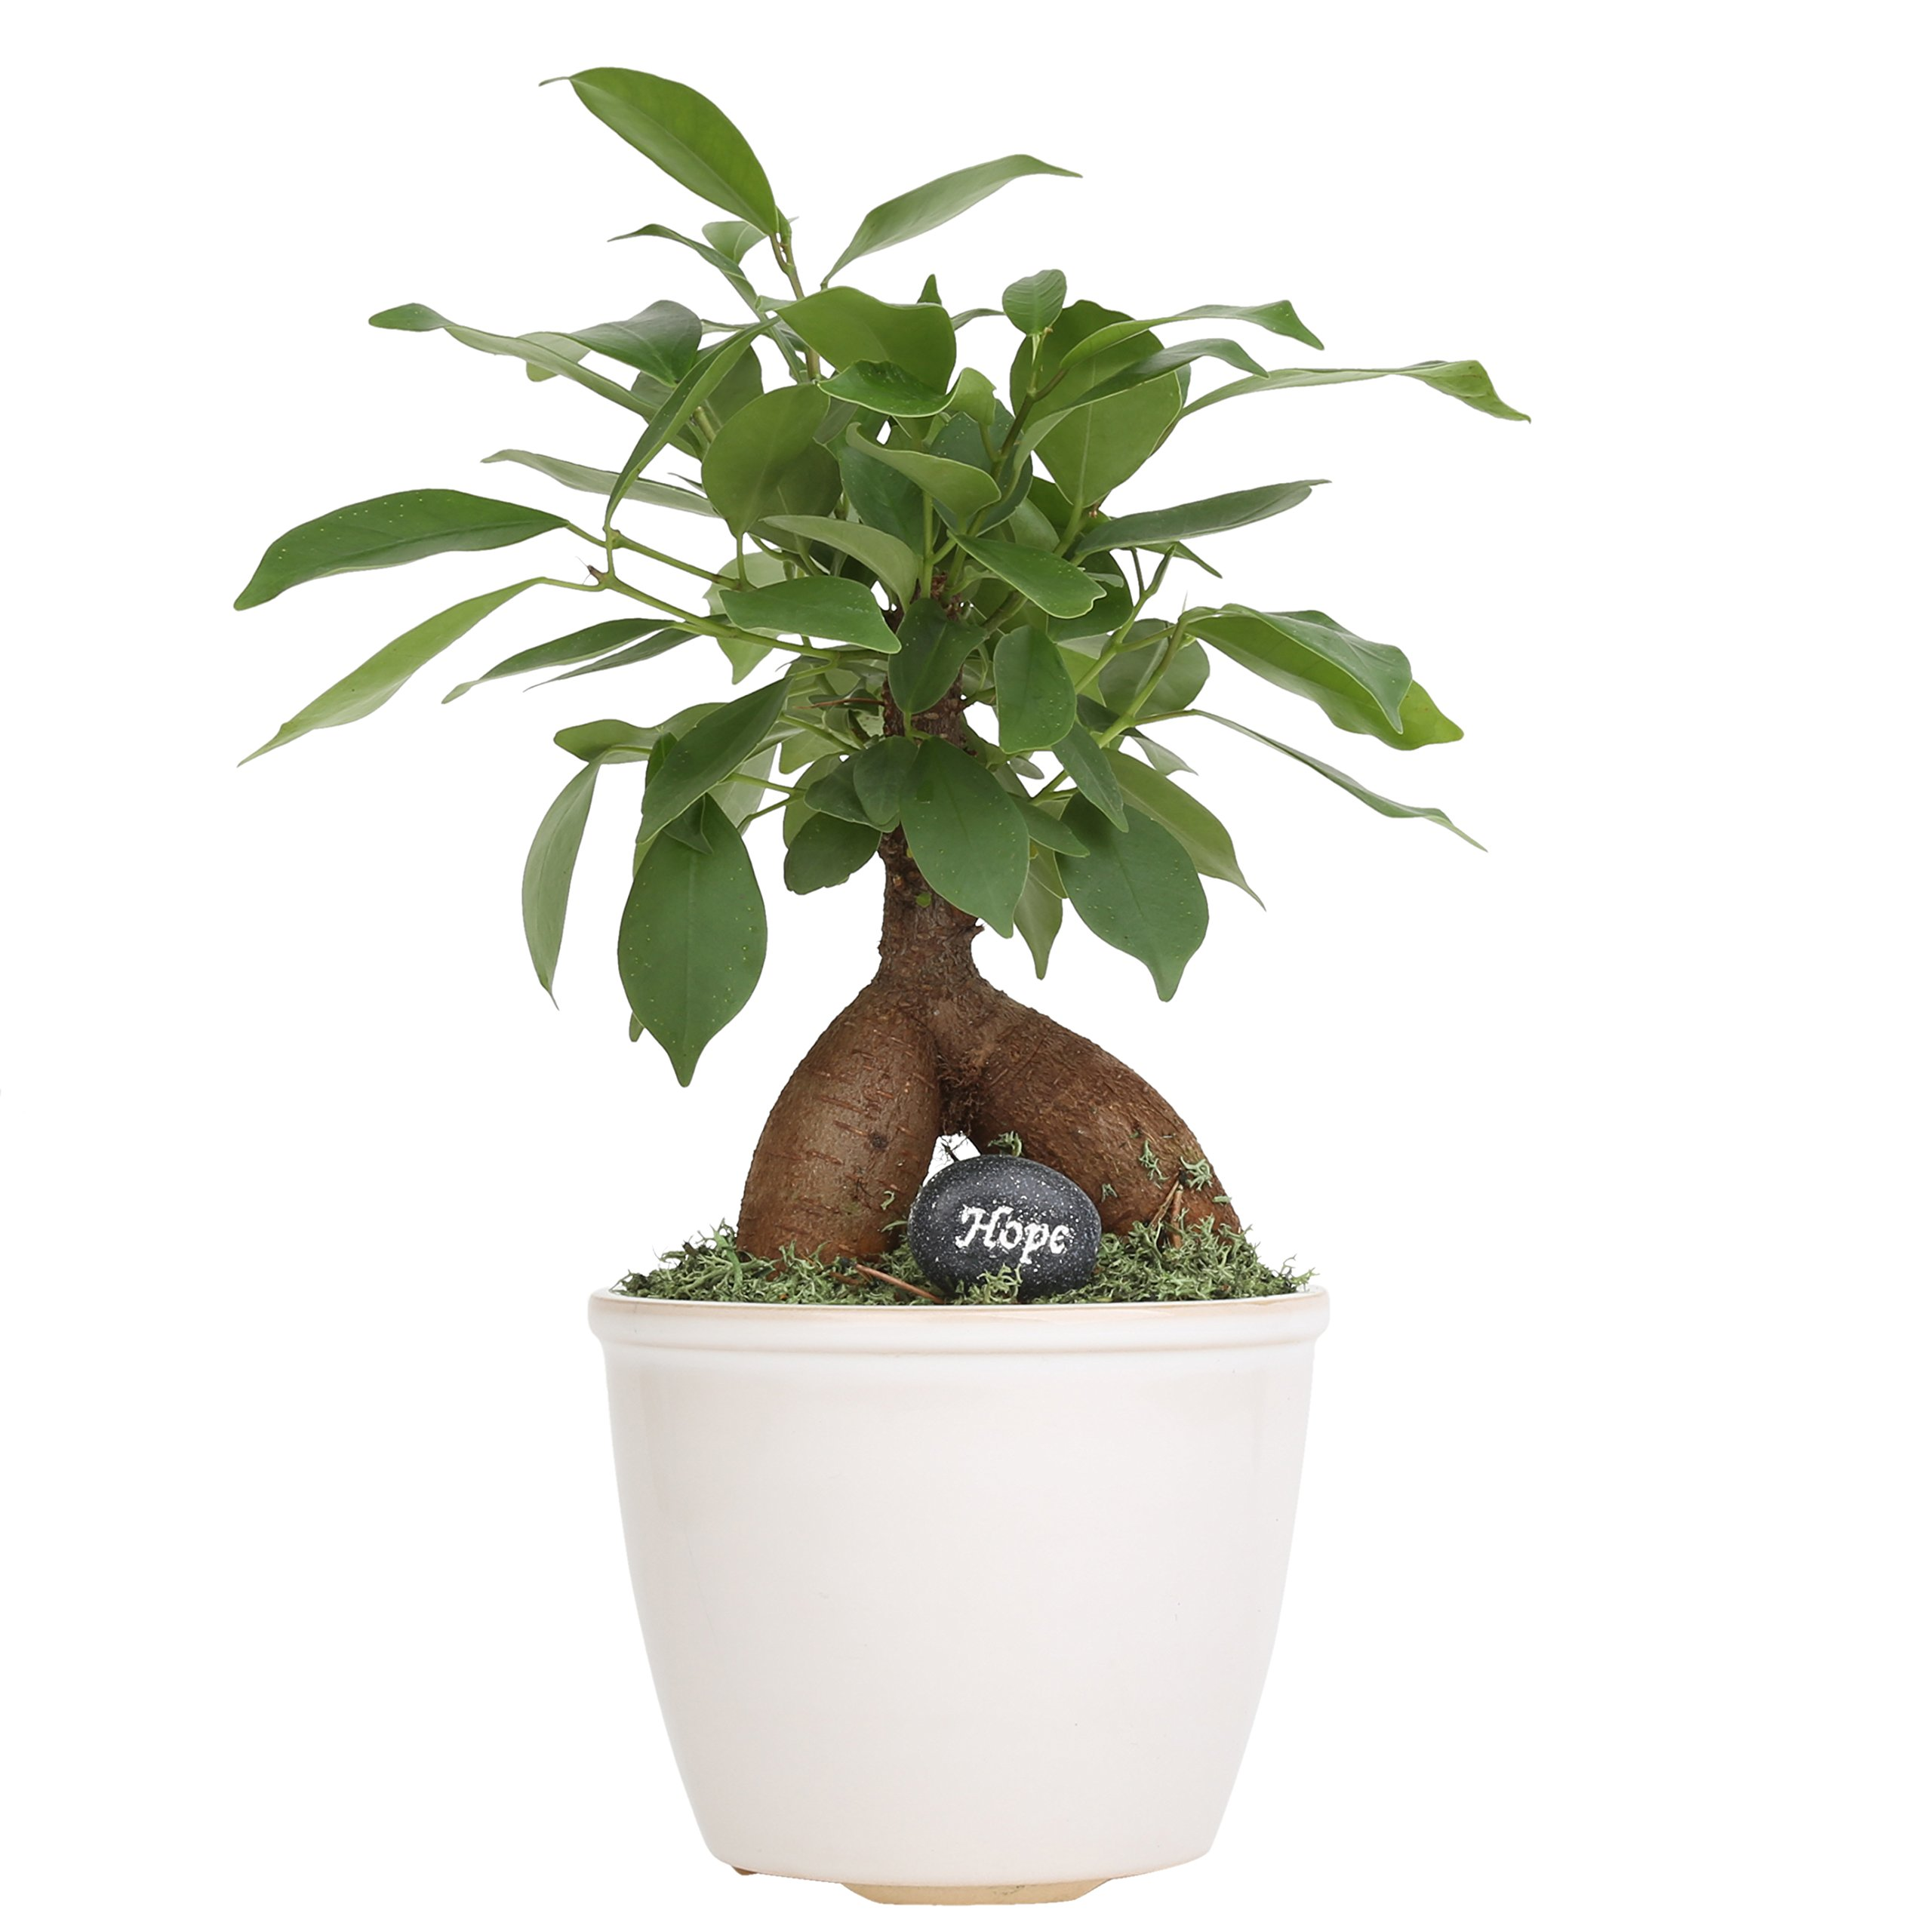 Costa Farms, Premium Live Indoor Mini Bonsai, Ficus 'Ginseng', Tabletop Plant, White Ceramic Planter, Shipped Fresh From Our Farm, Excellent Gift by Costa Farms